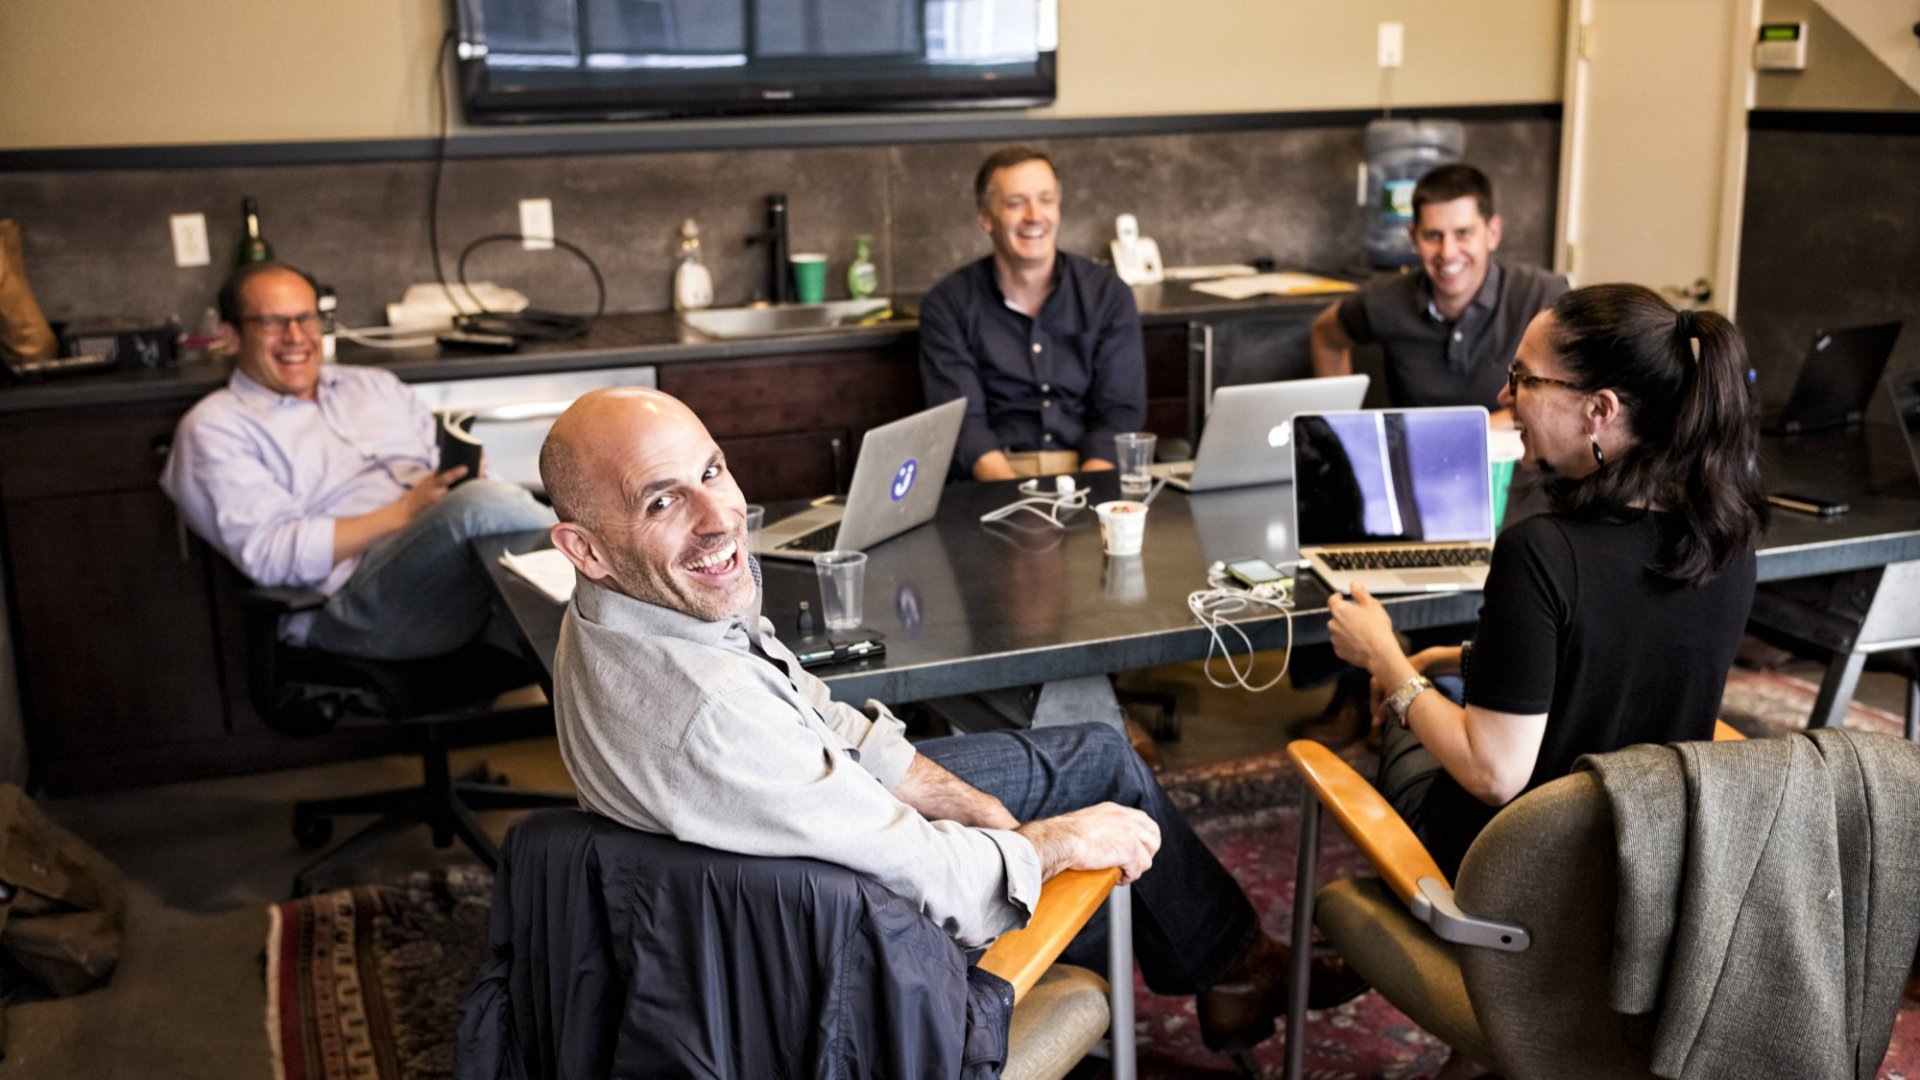 Marc Lore, CEO of e-commerce site jet.com, and his team smile at the photographer during the meeting in the conference room at jet.com headquarters in Montclair, New Jersey.